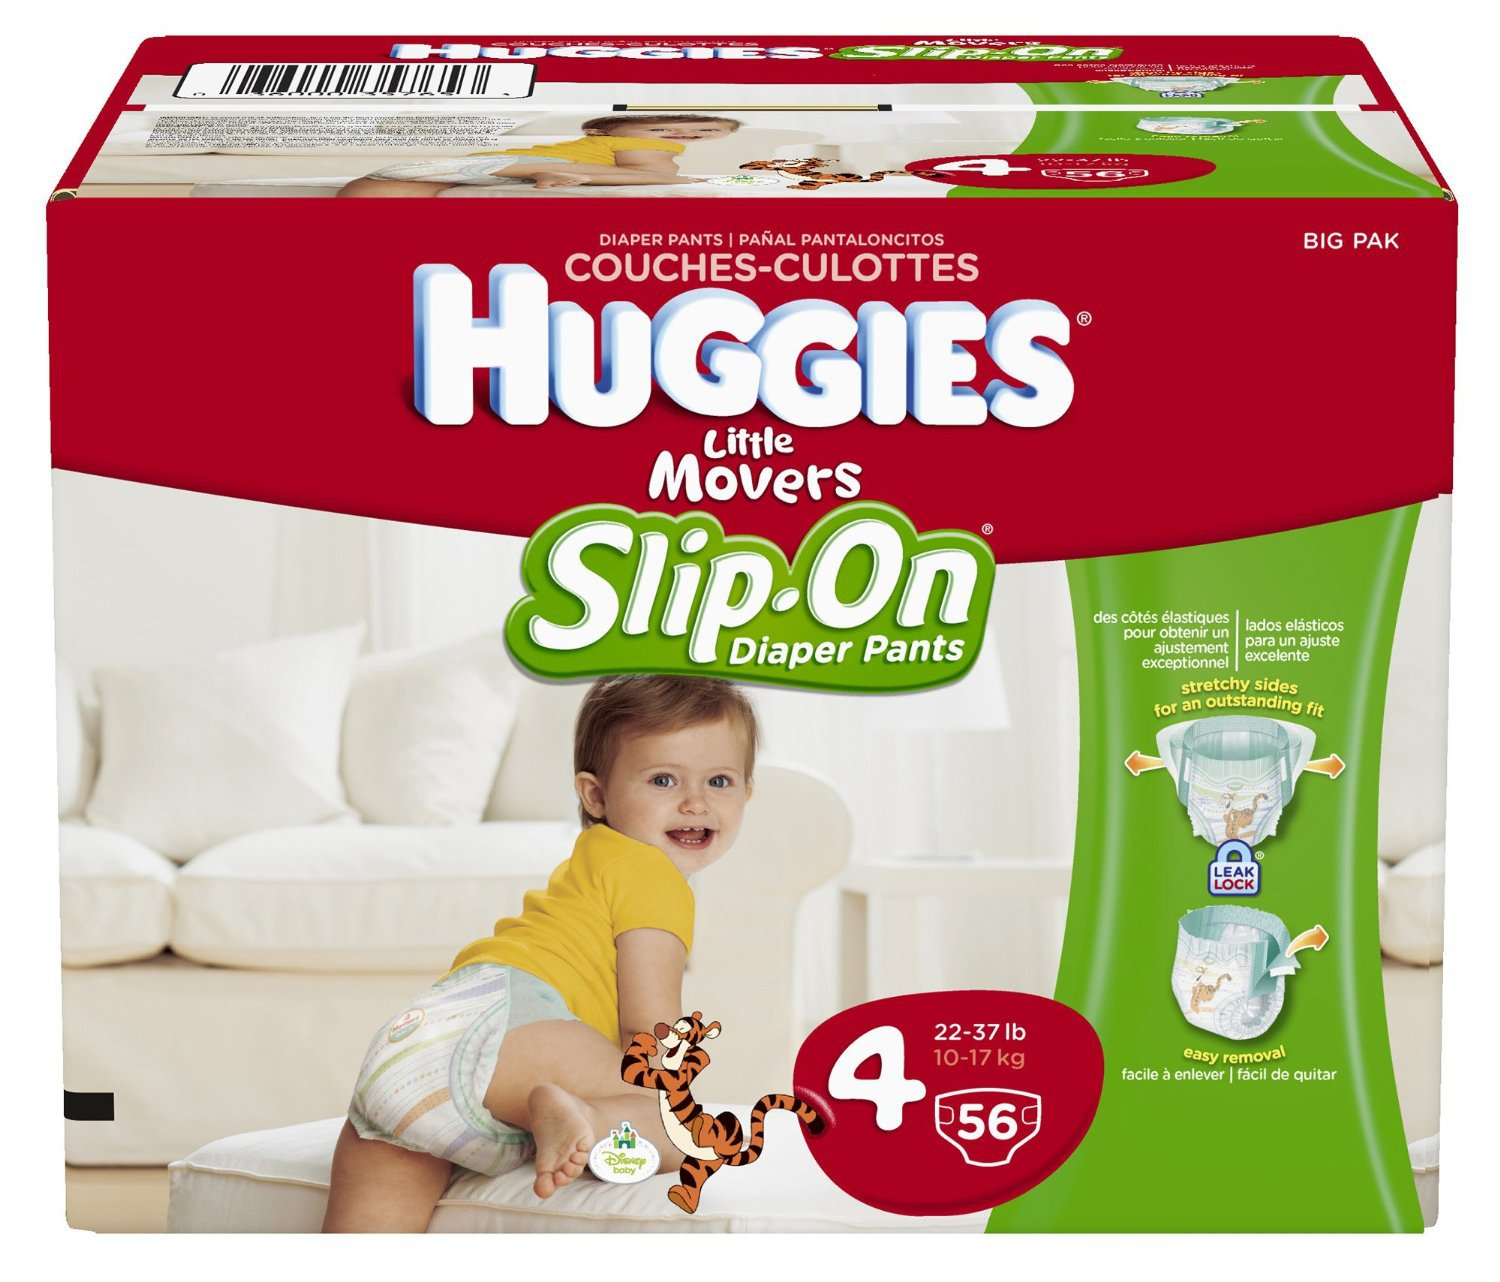 Huggies Little Movers Slip-On Diapers Size 4 - 56 Count (FREE ...